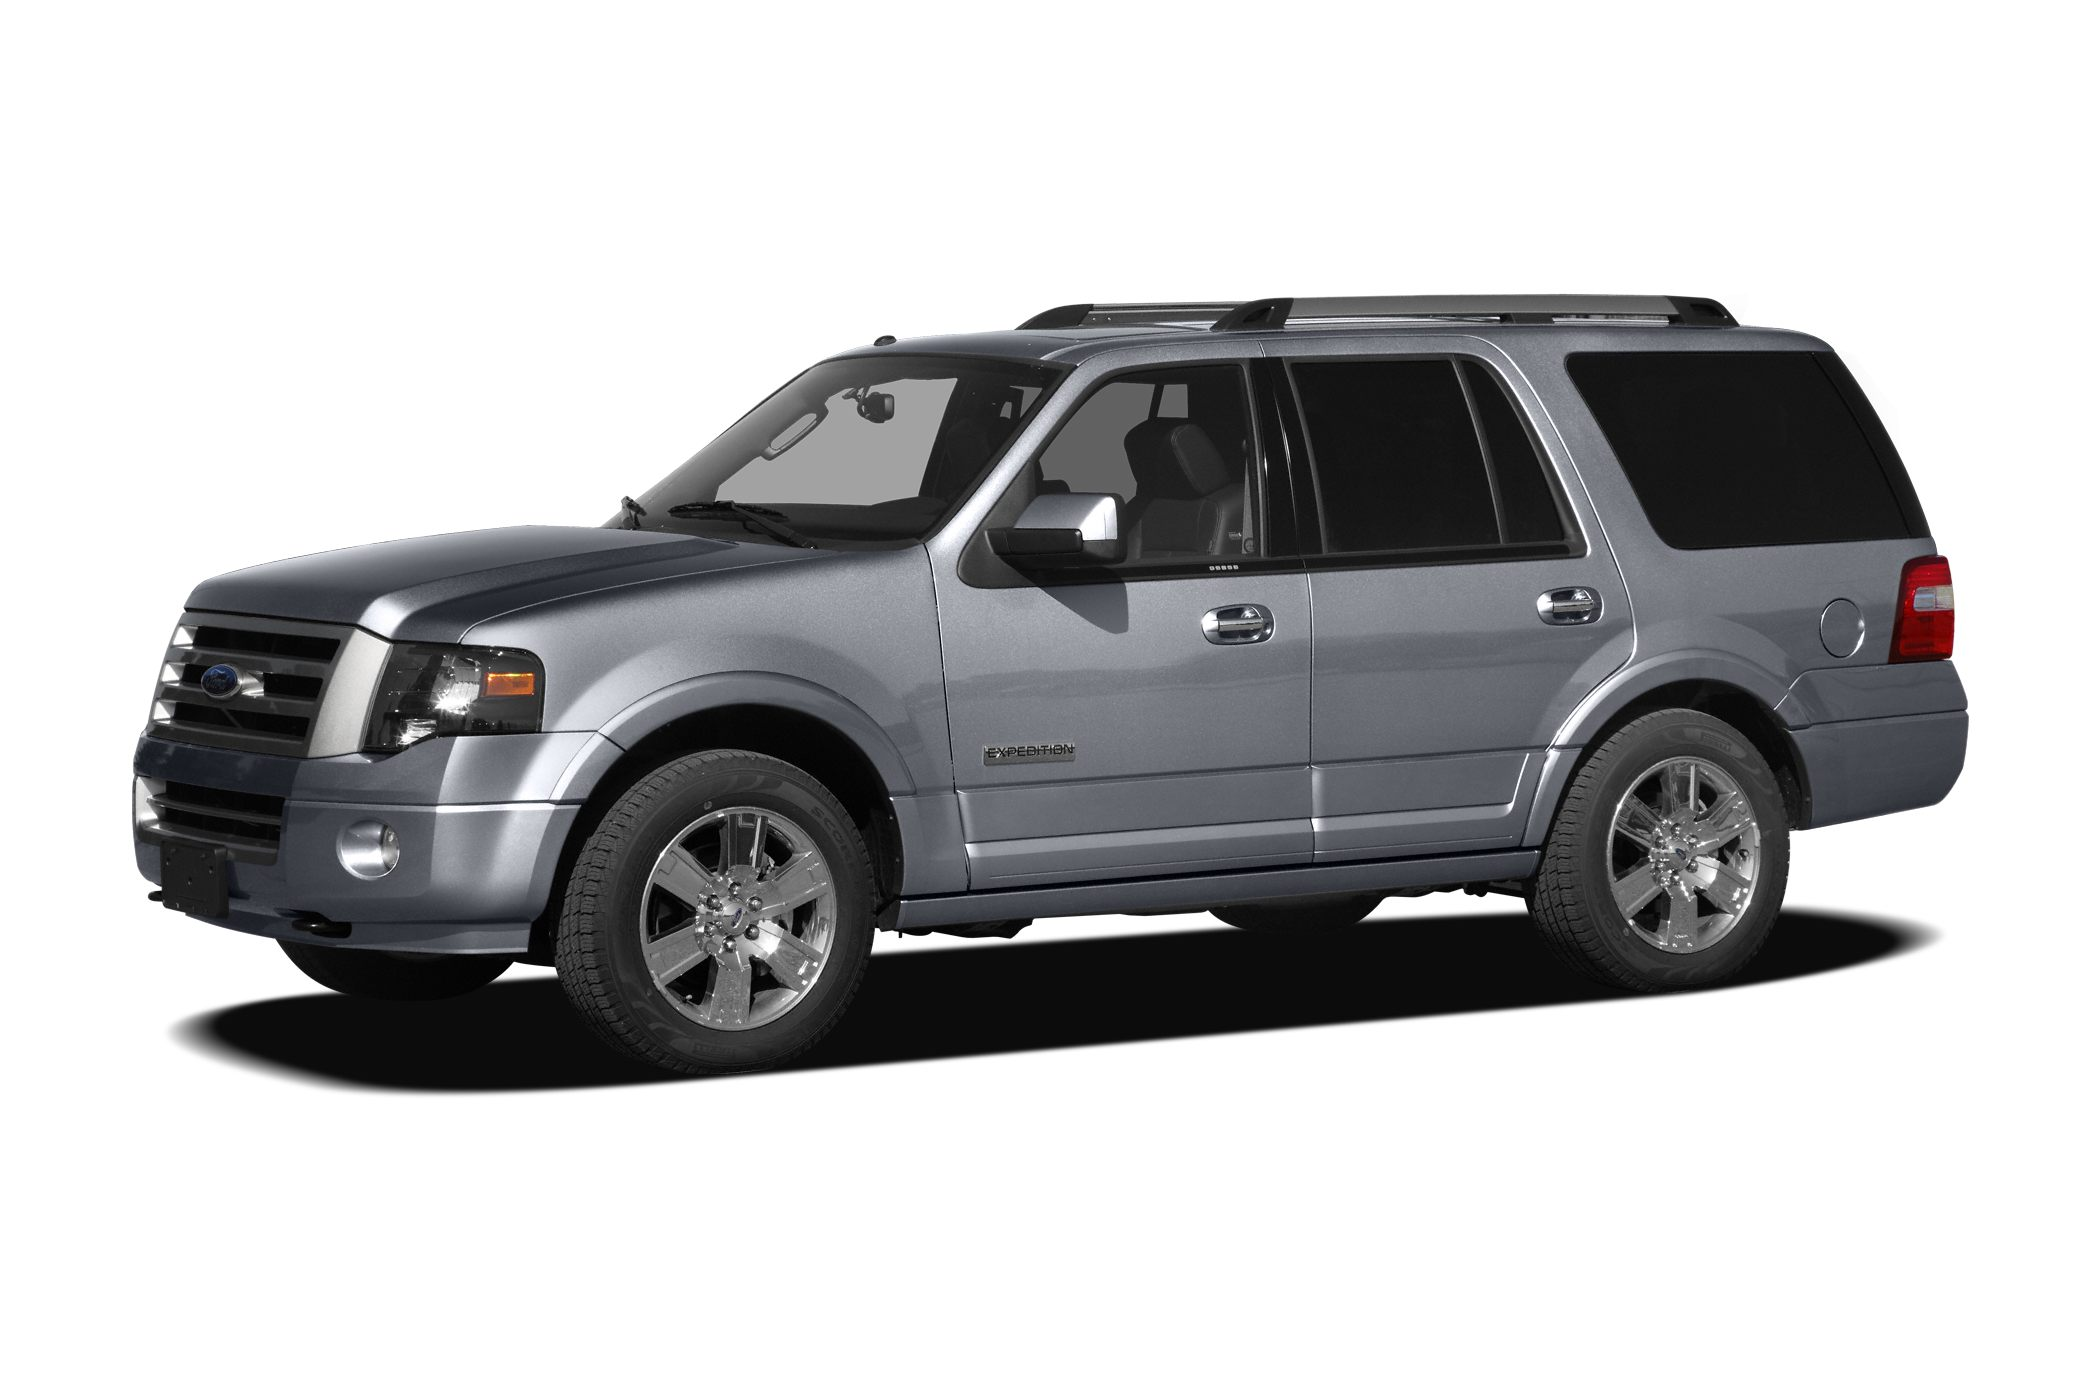 2010 Ford Expedition Limited LEATHER NAVIGATION DVD Power Drivers Seat SYNC Power Windows an